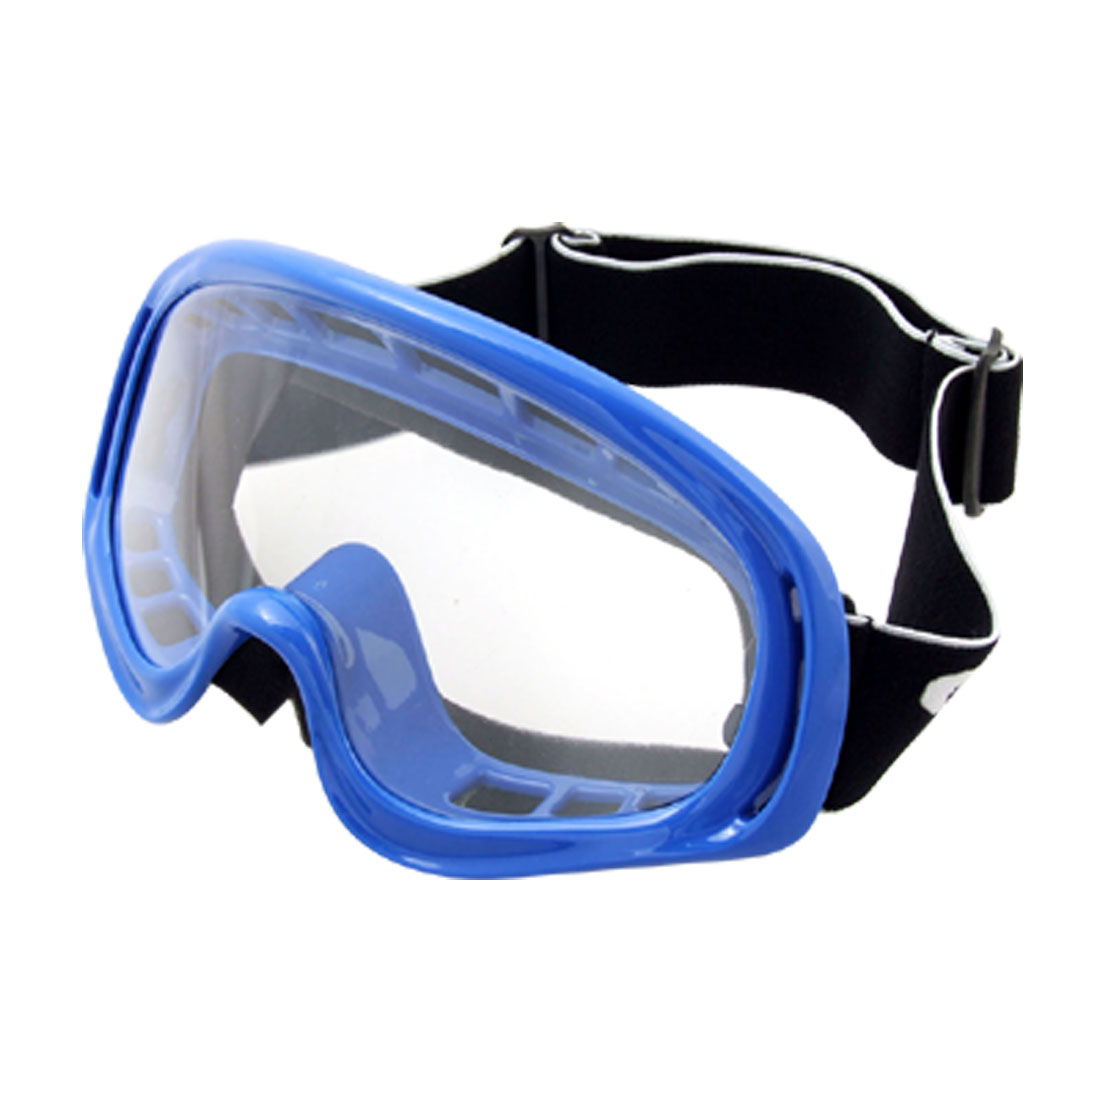 Vogue Blue Frame Racing Sports Goggles Glasses